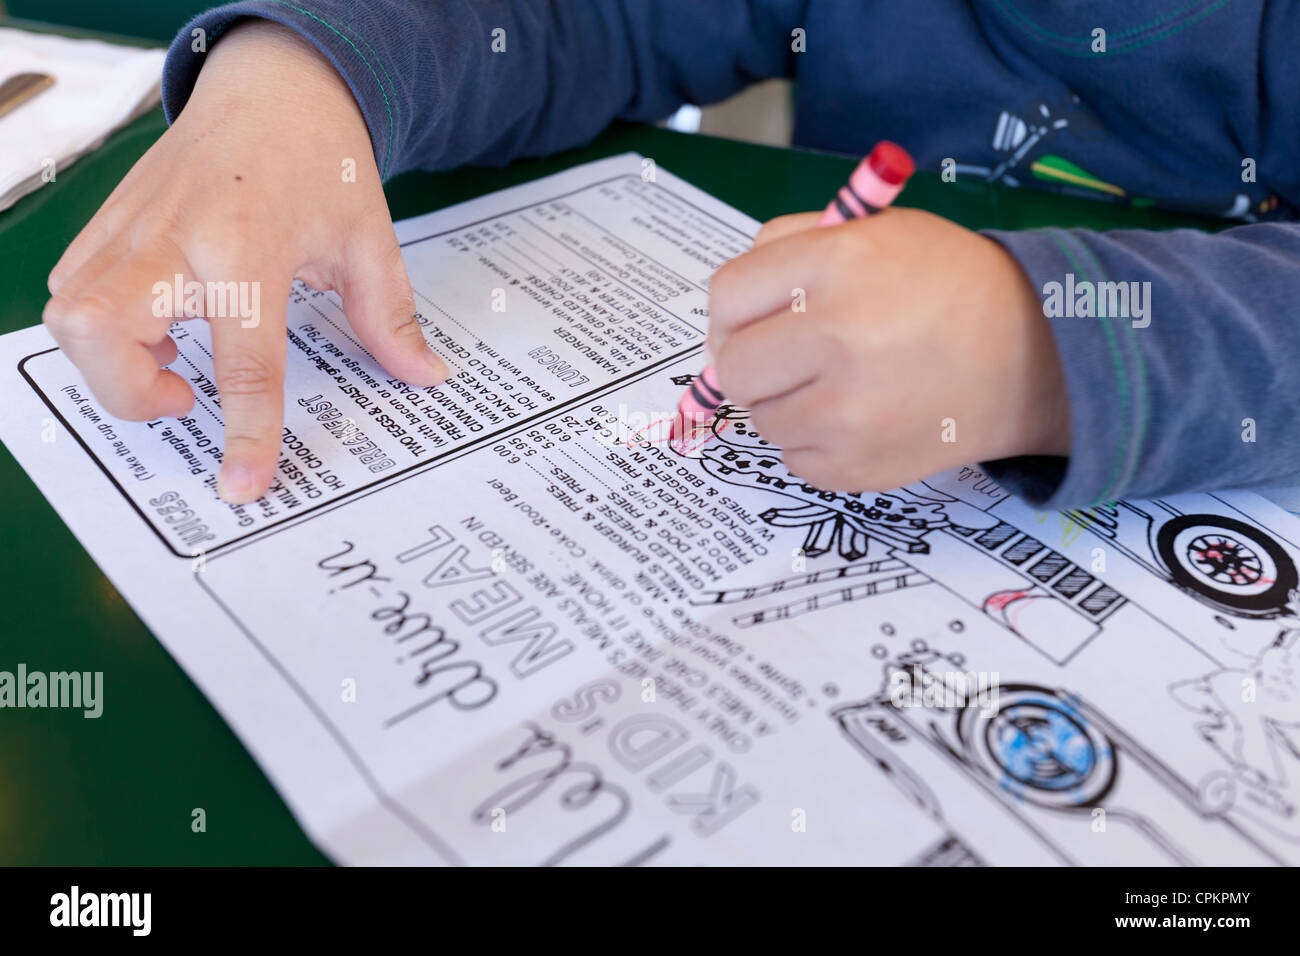 Closeup of a young boy coloring a children's diner menu - Stock Image